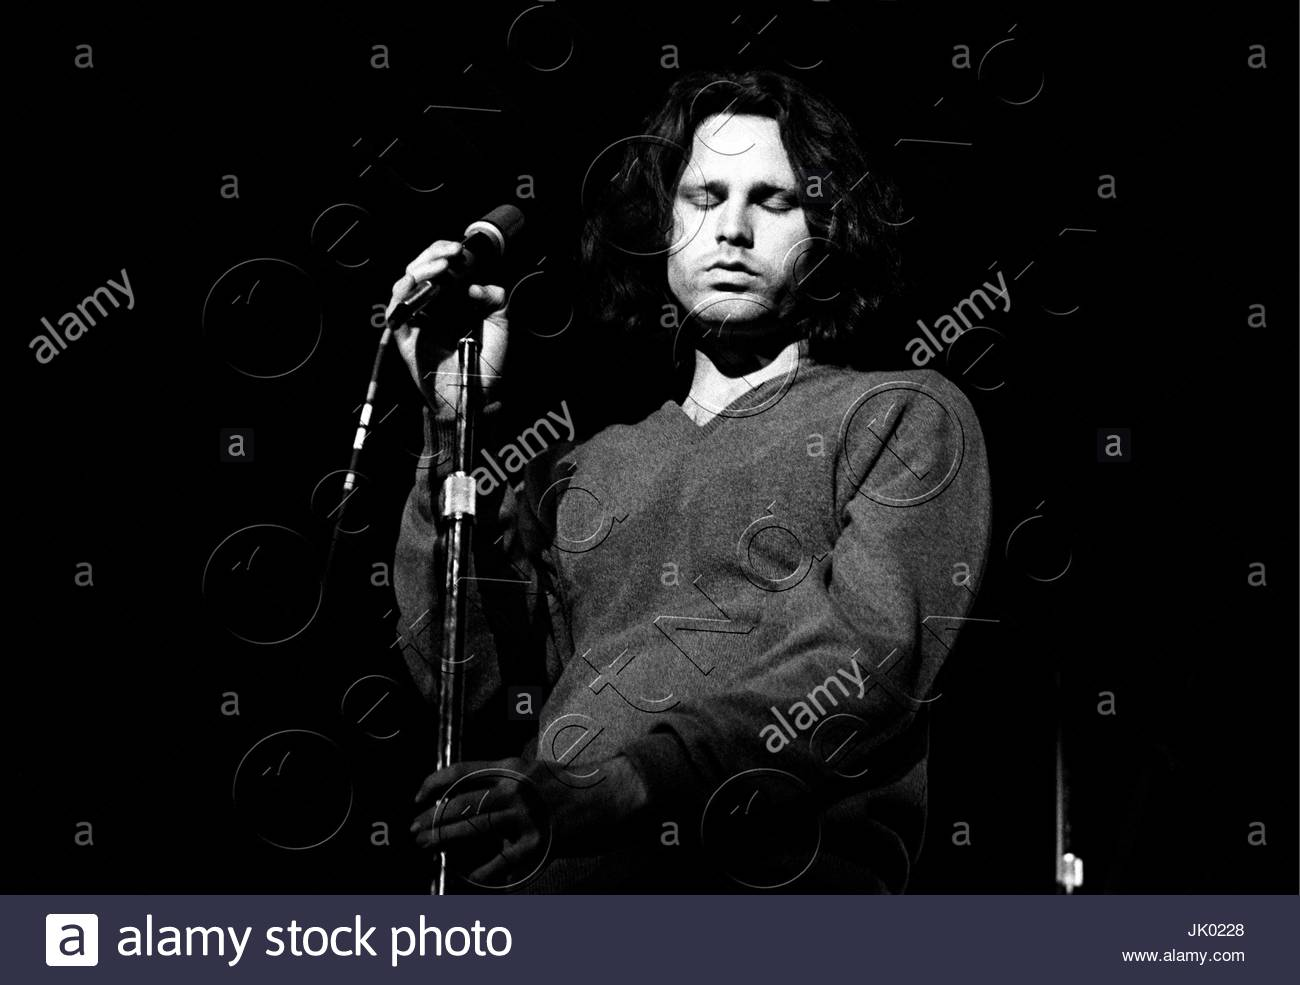 Jim Morrison of The Doors performing at the Boston Arena in Boston MA on April 10 1970. During this concert Jim Morrison asked the audience if  anyone ...  sc 1 st  Alamy & Jim Morrison of The Doors performing at the Boston Arena in Boston ... pezcame.com